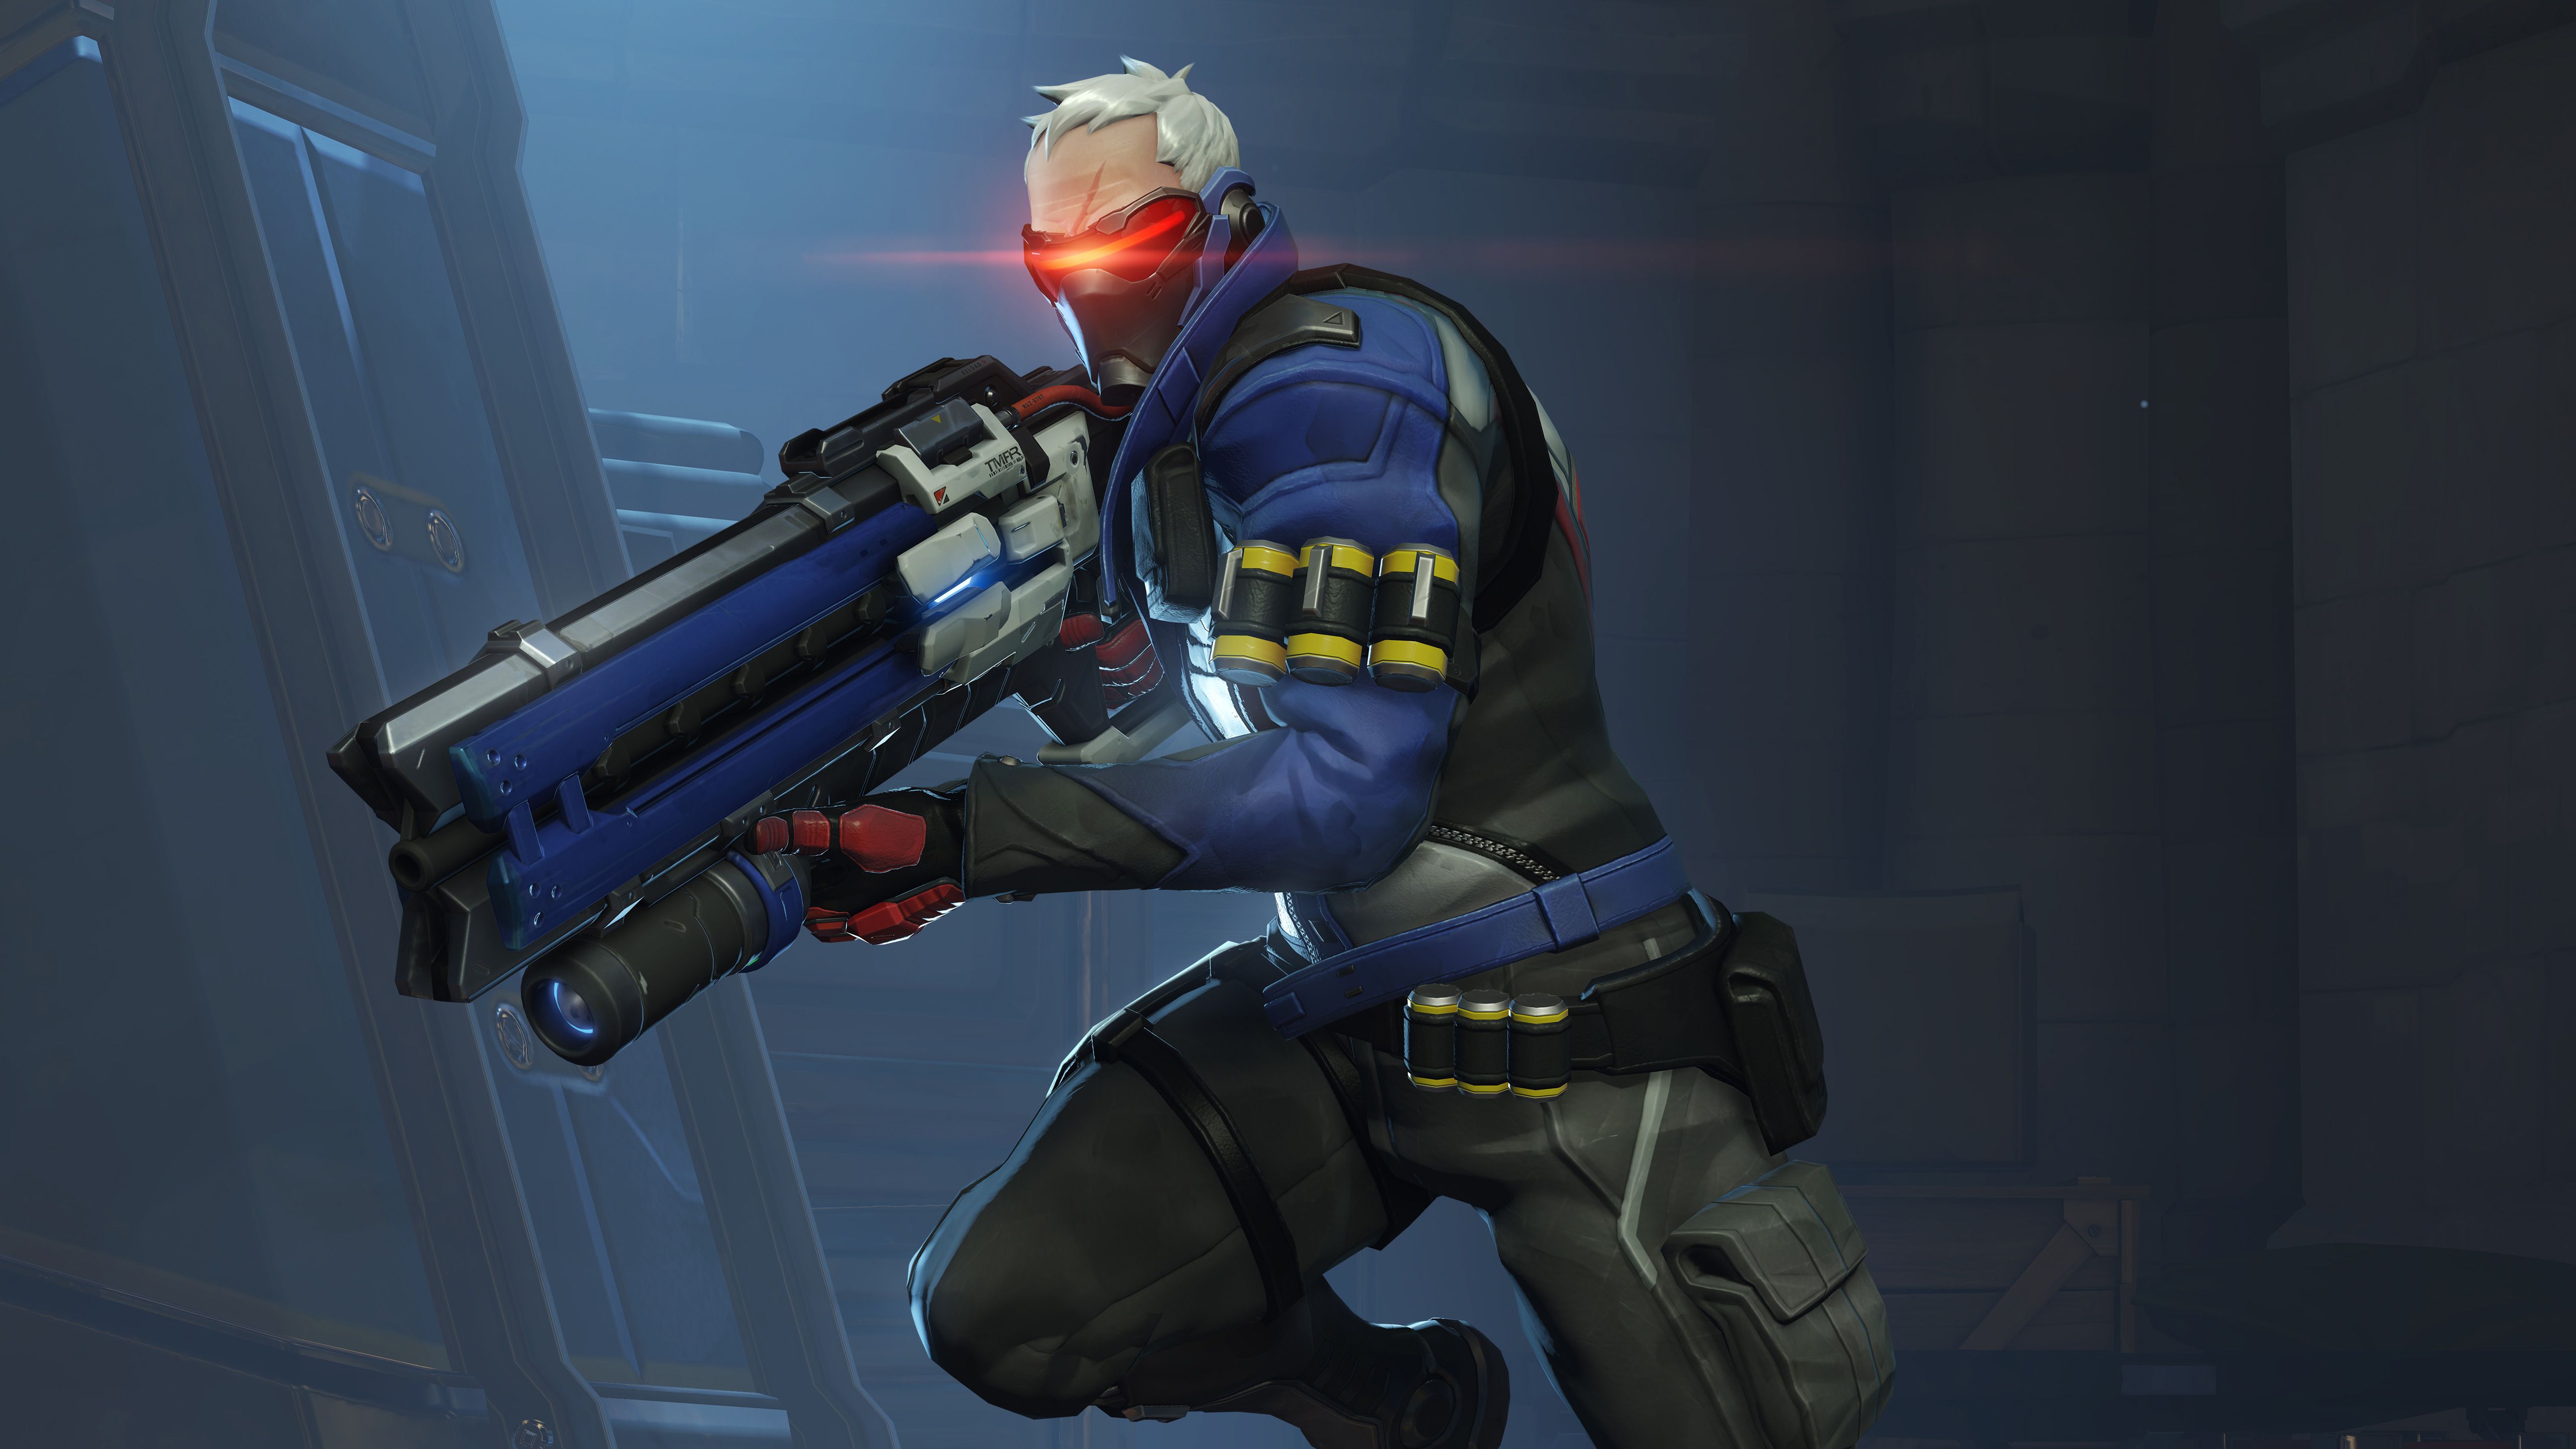 Overwatch Soldier 76 Wallpapers HD Wallpapers 5120x2880